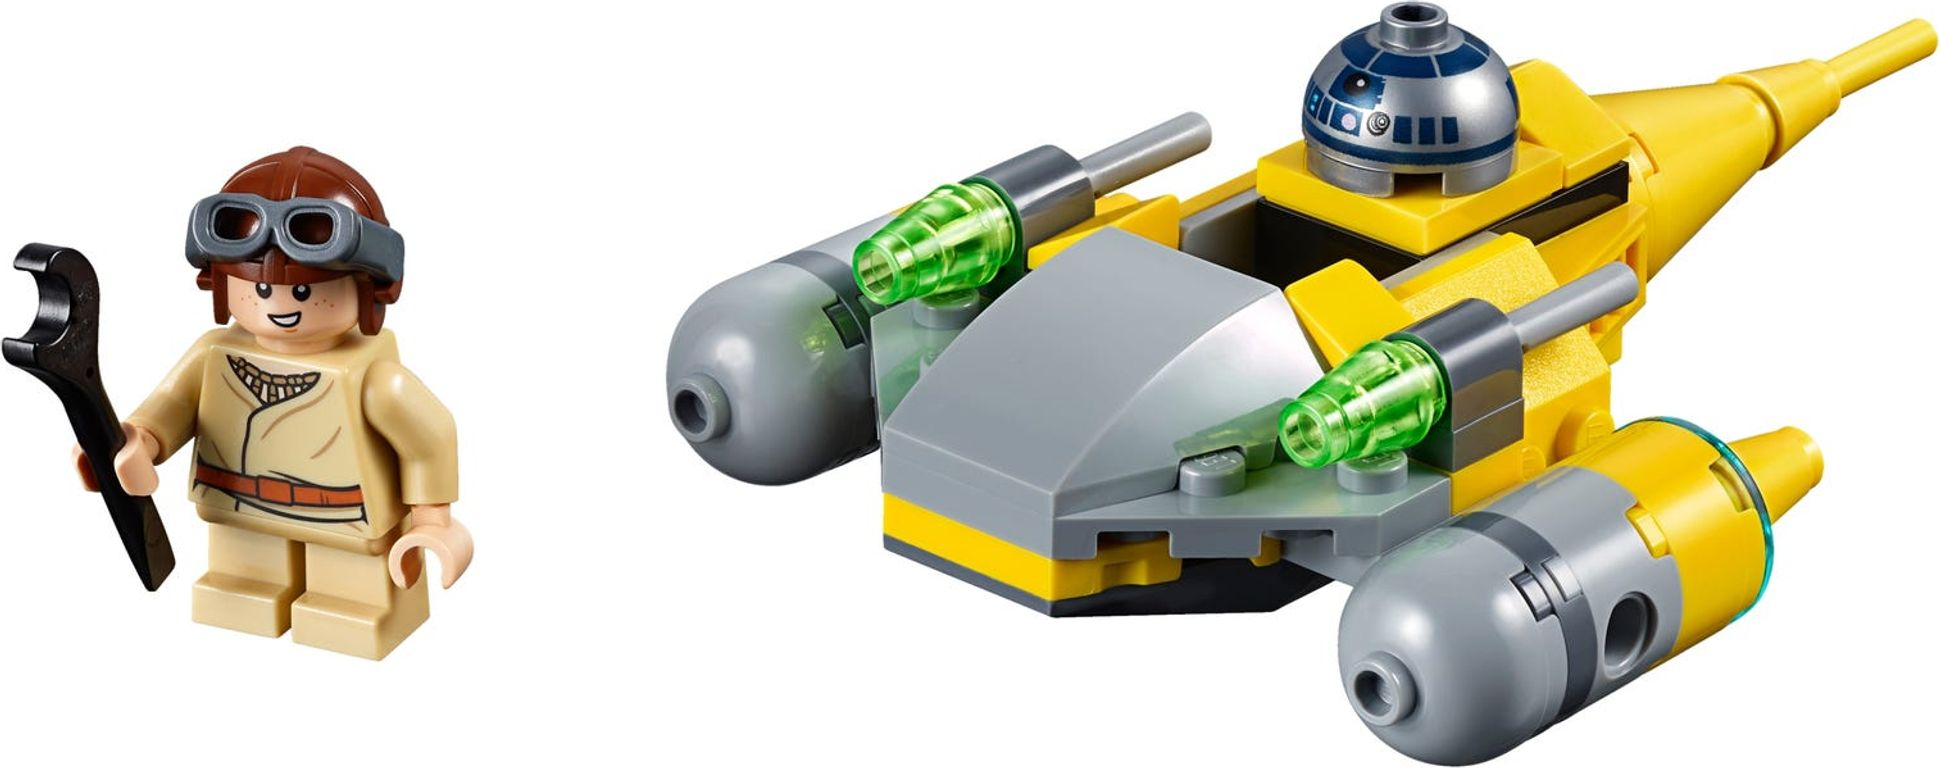 LEGO® Star Wars Naboo Starfighter™ Microfighter components